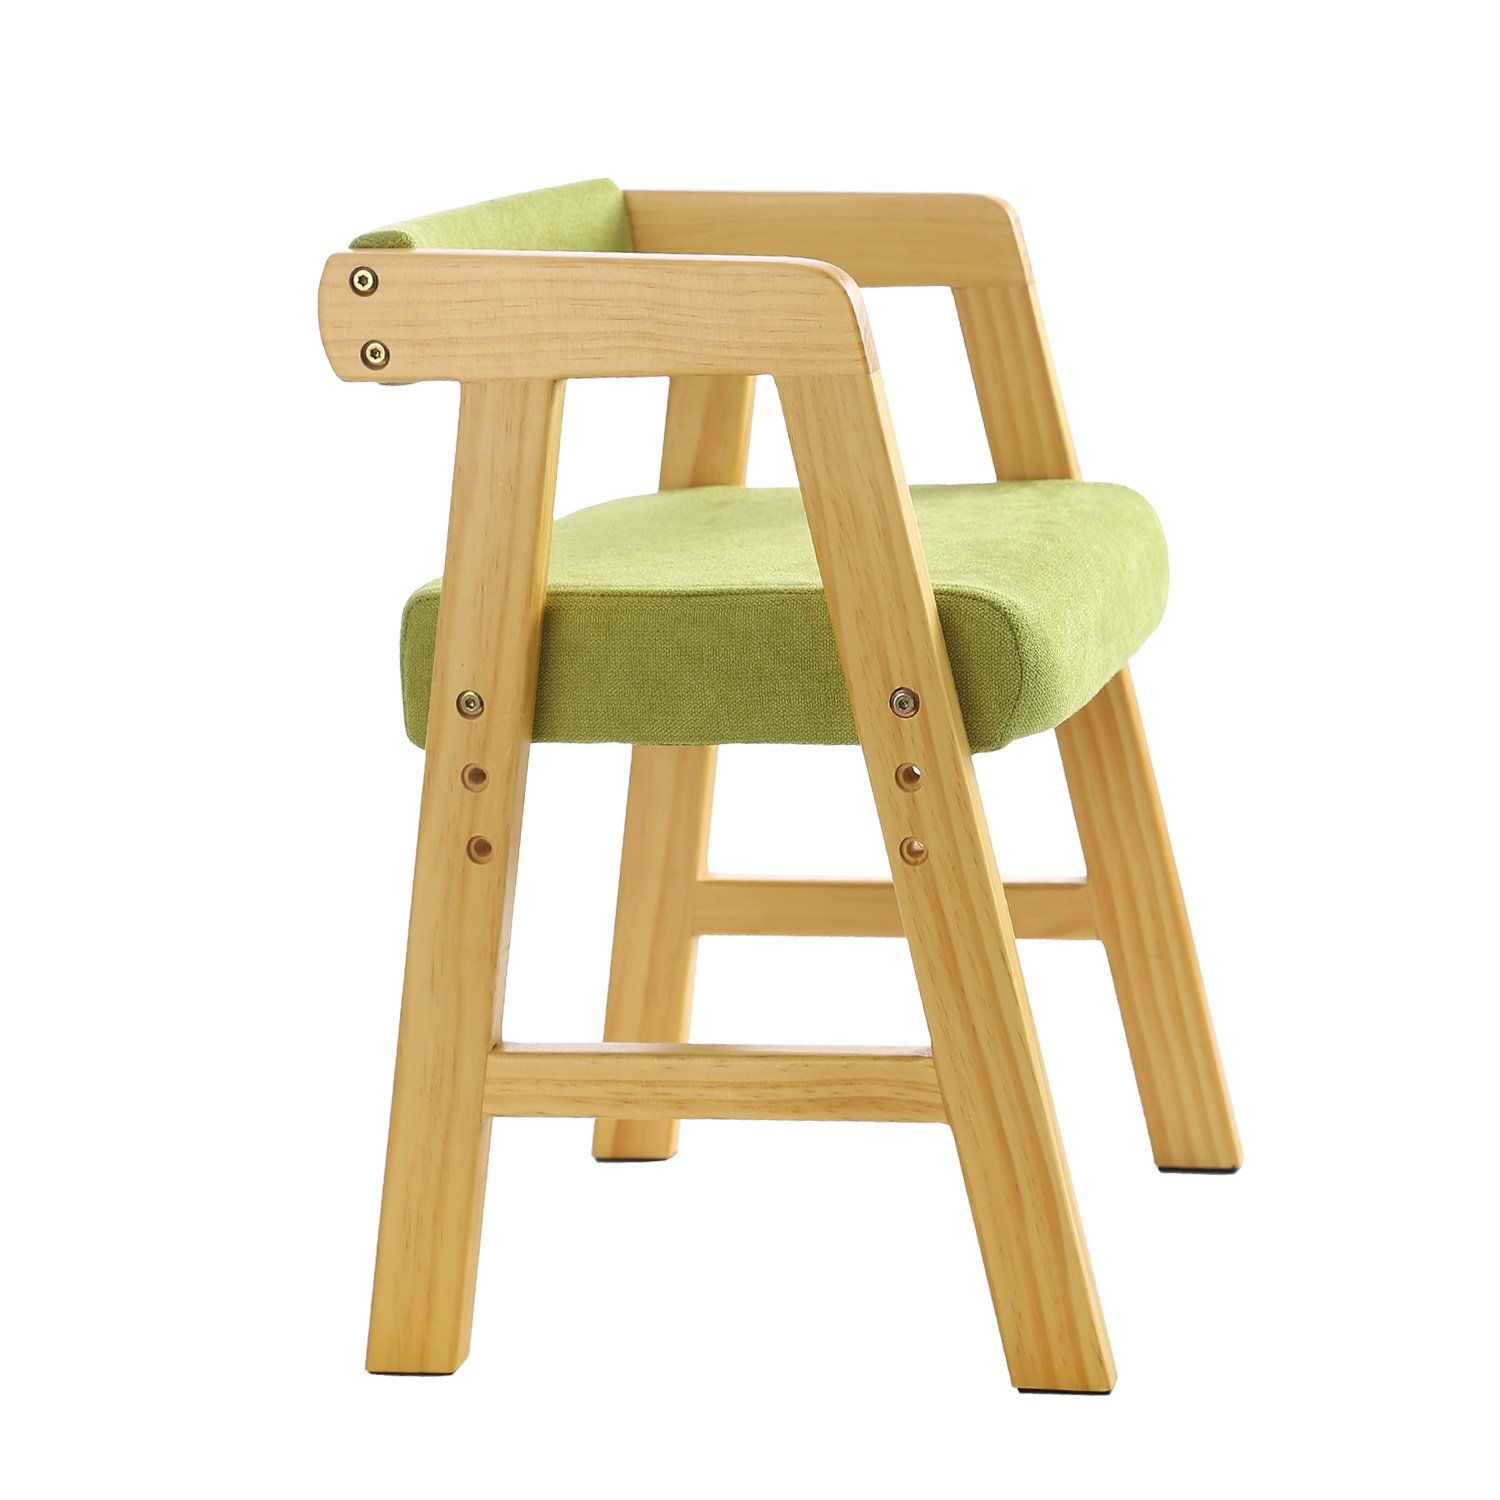 Youhi Heightadjustable Childrens Chair Kids Solid Wooden Study